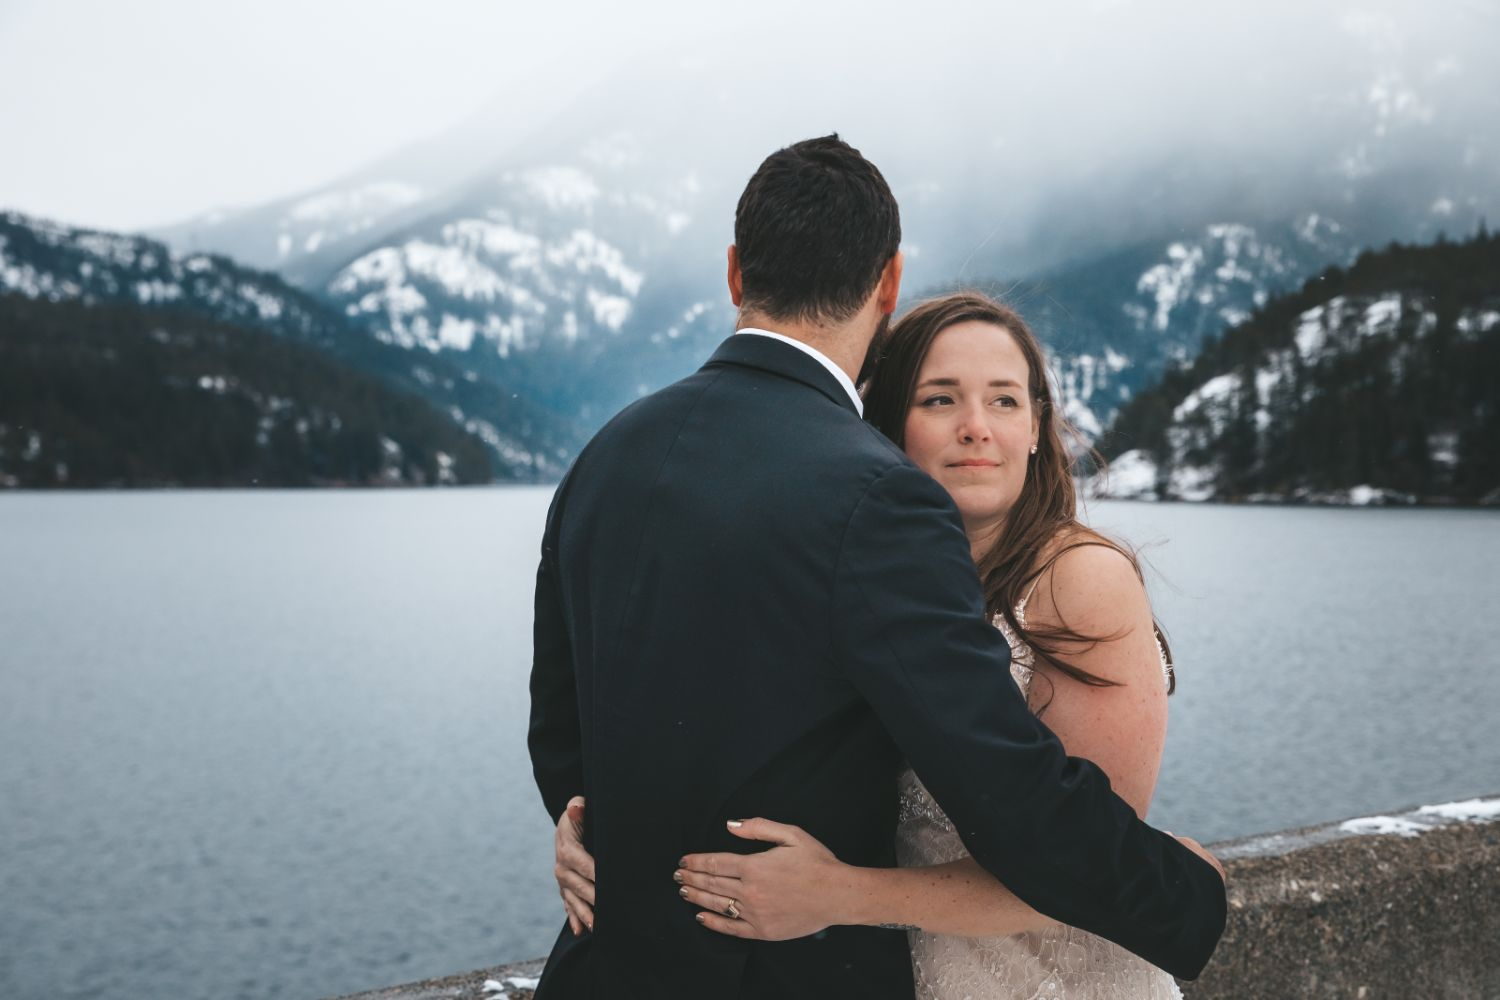 bride-groom-take-in-snowy-mountain-view